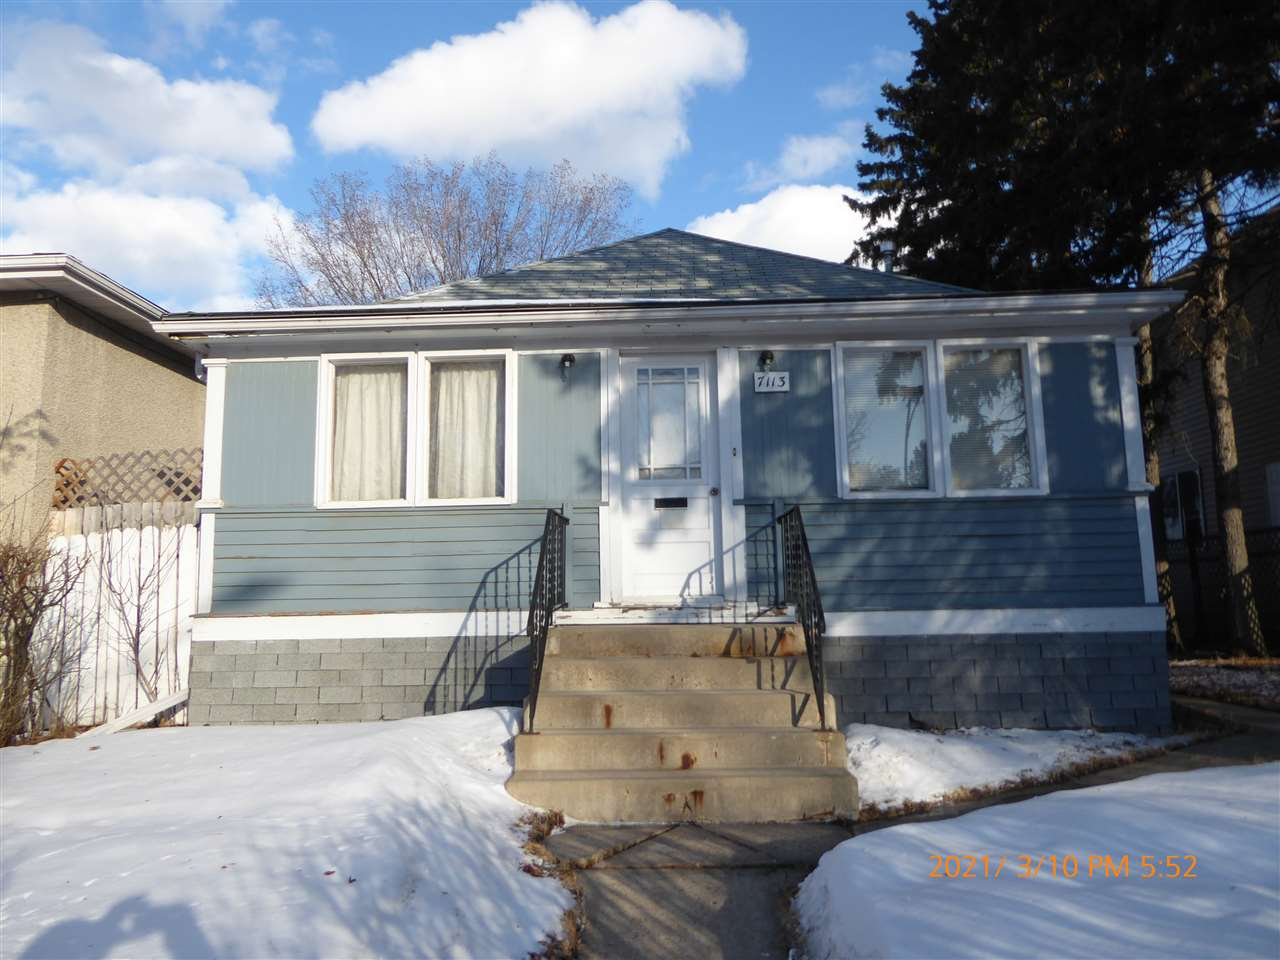 1914 Bungalow  on a 40' x 160' lot - Best use - Infill property - Queen Alexandra Neighborhood. 2nd best use possibility - 'Handyman Special/Fixer-Upper'. Deep lot with good Double Detached garage at the back. For Sale 'as is, where is' at the time of possession. House and garage. Estate Sale currently proceeding through Probate.